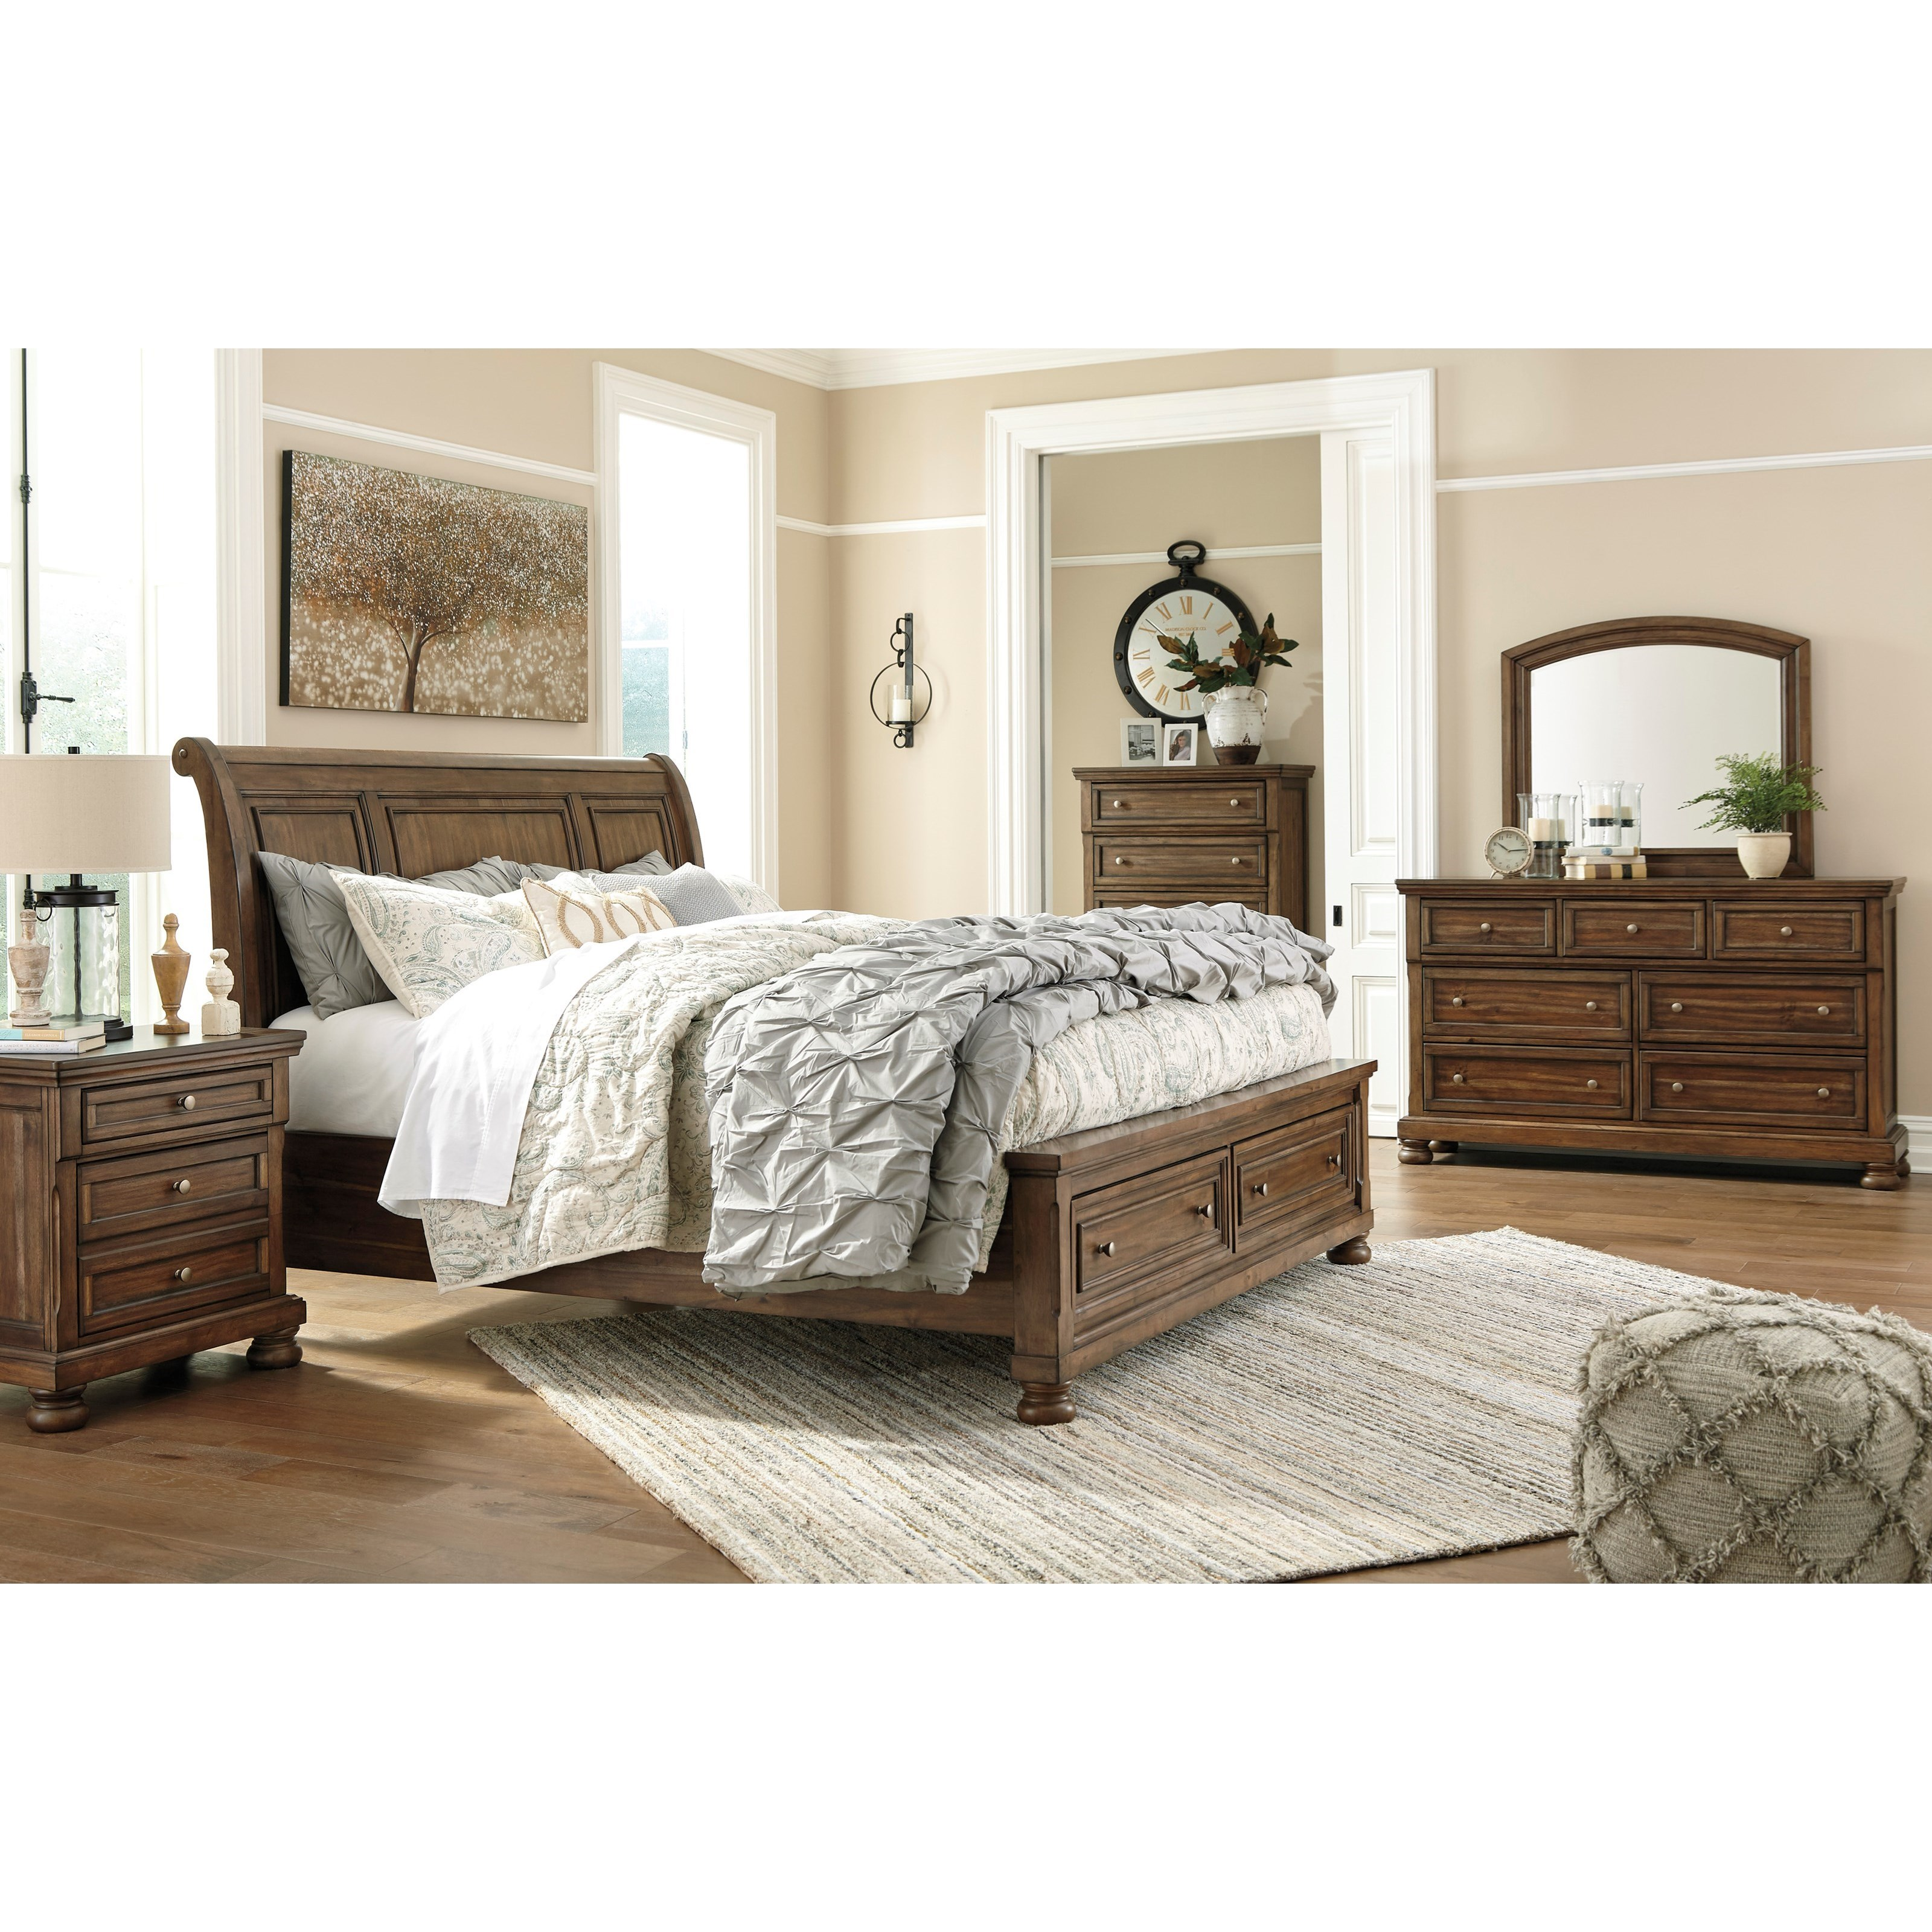 Flynnter California King Bedroom Group by Ashley Signature Design at Rooms and Rest